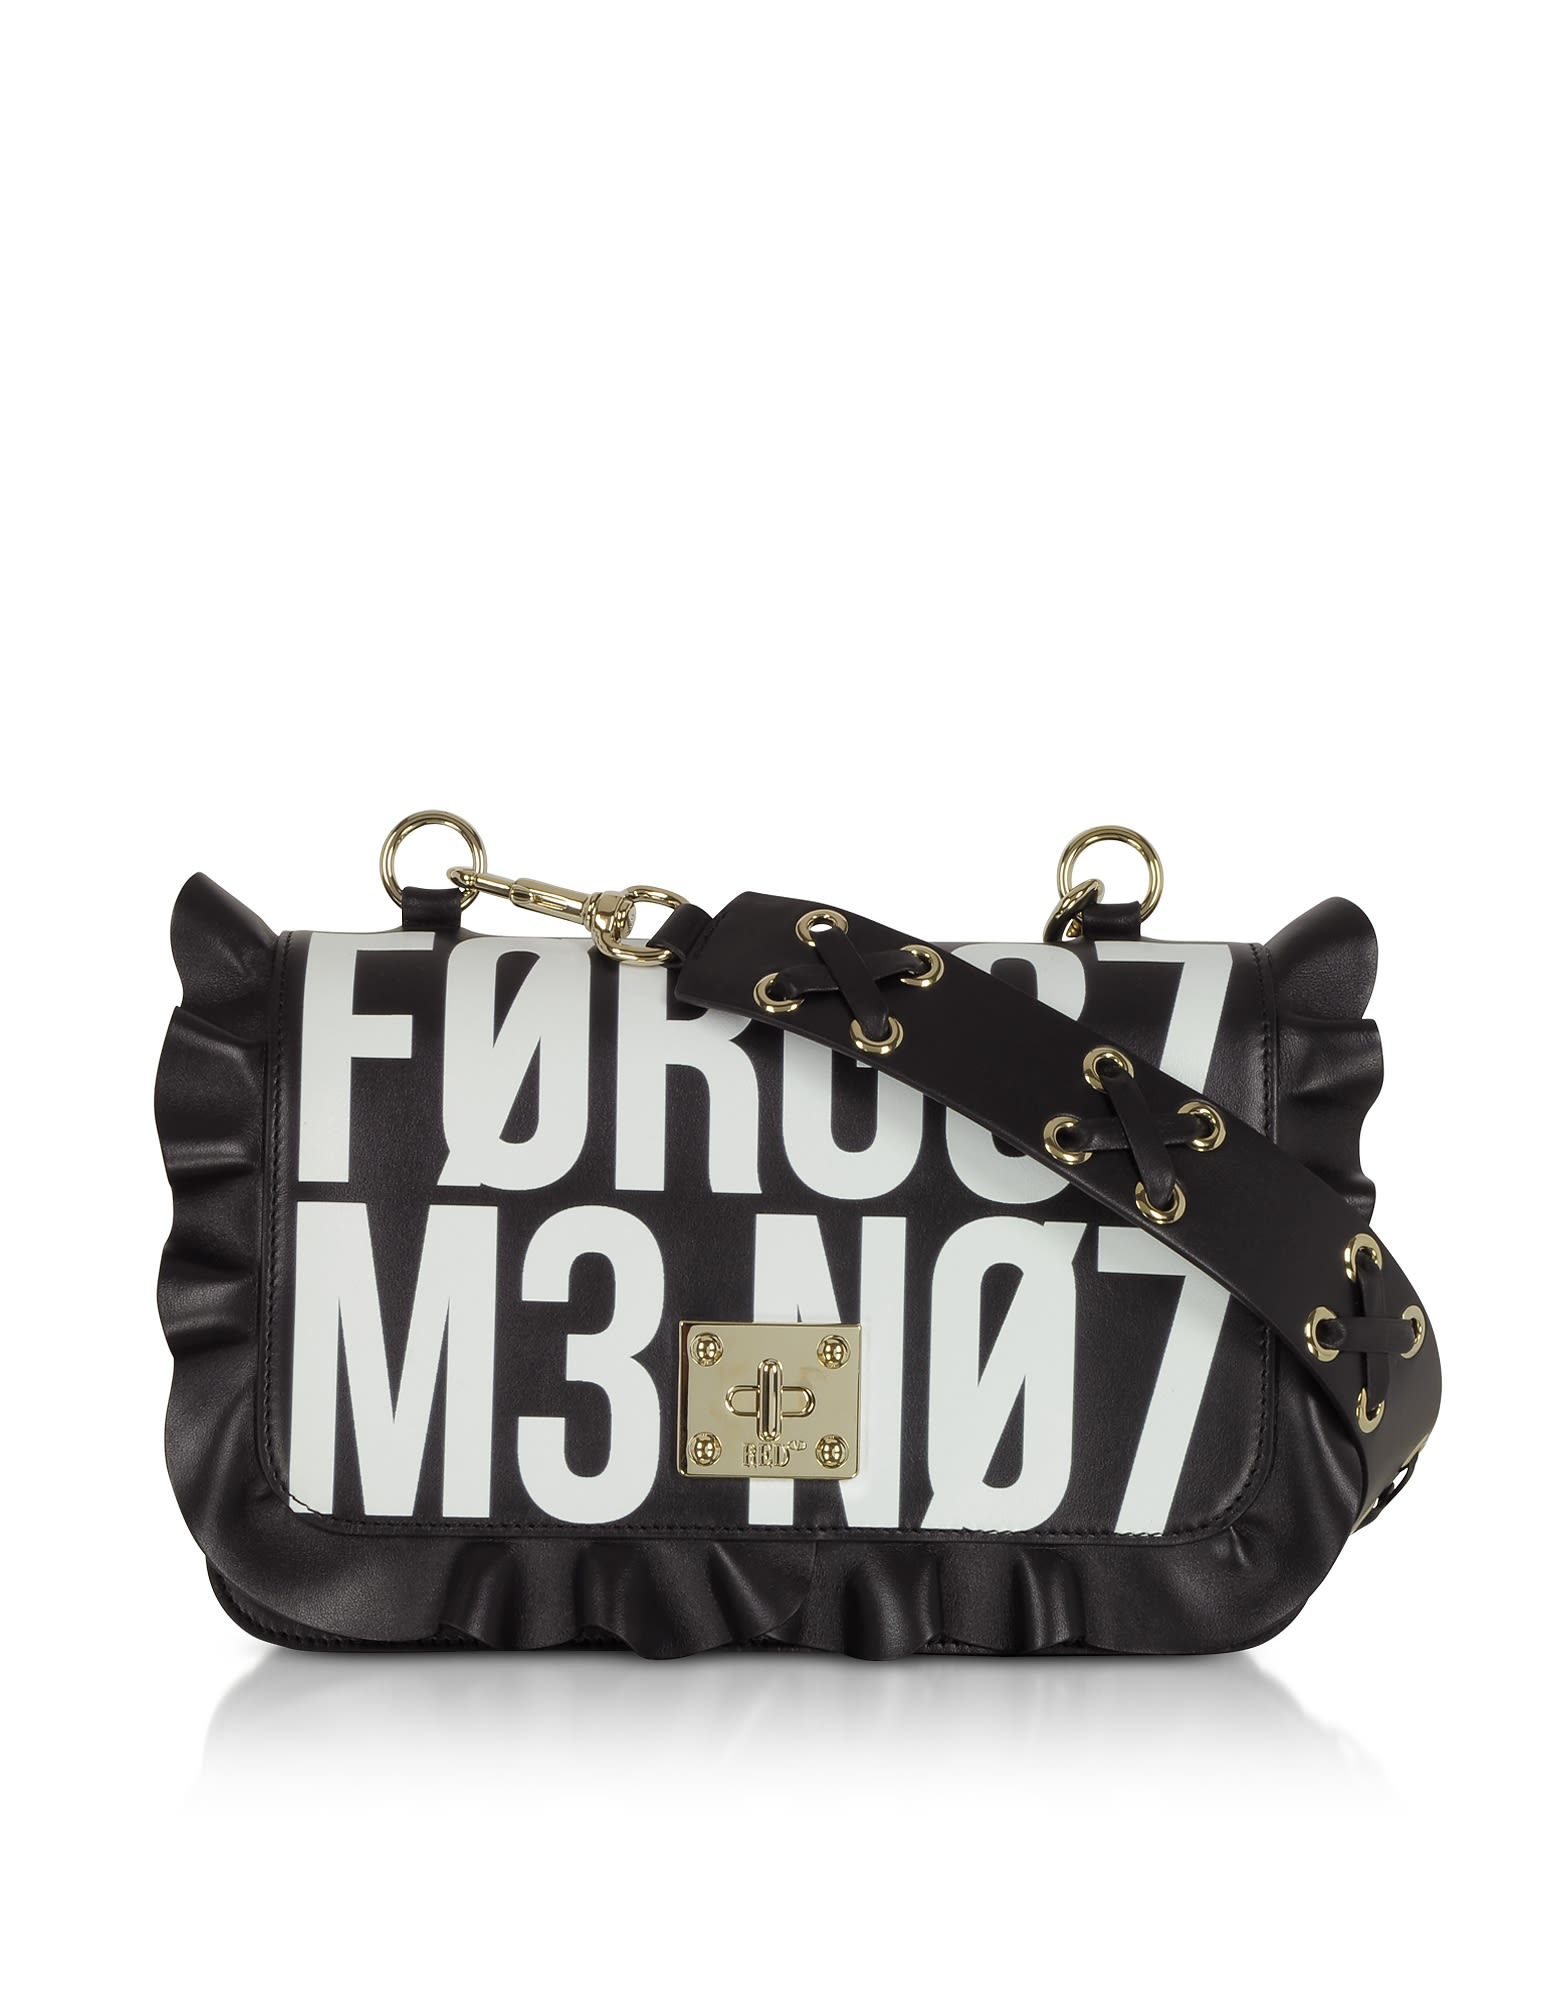 Red Valentino Rock Ruffle Signs Shoulder Bag, Black / White